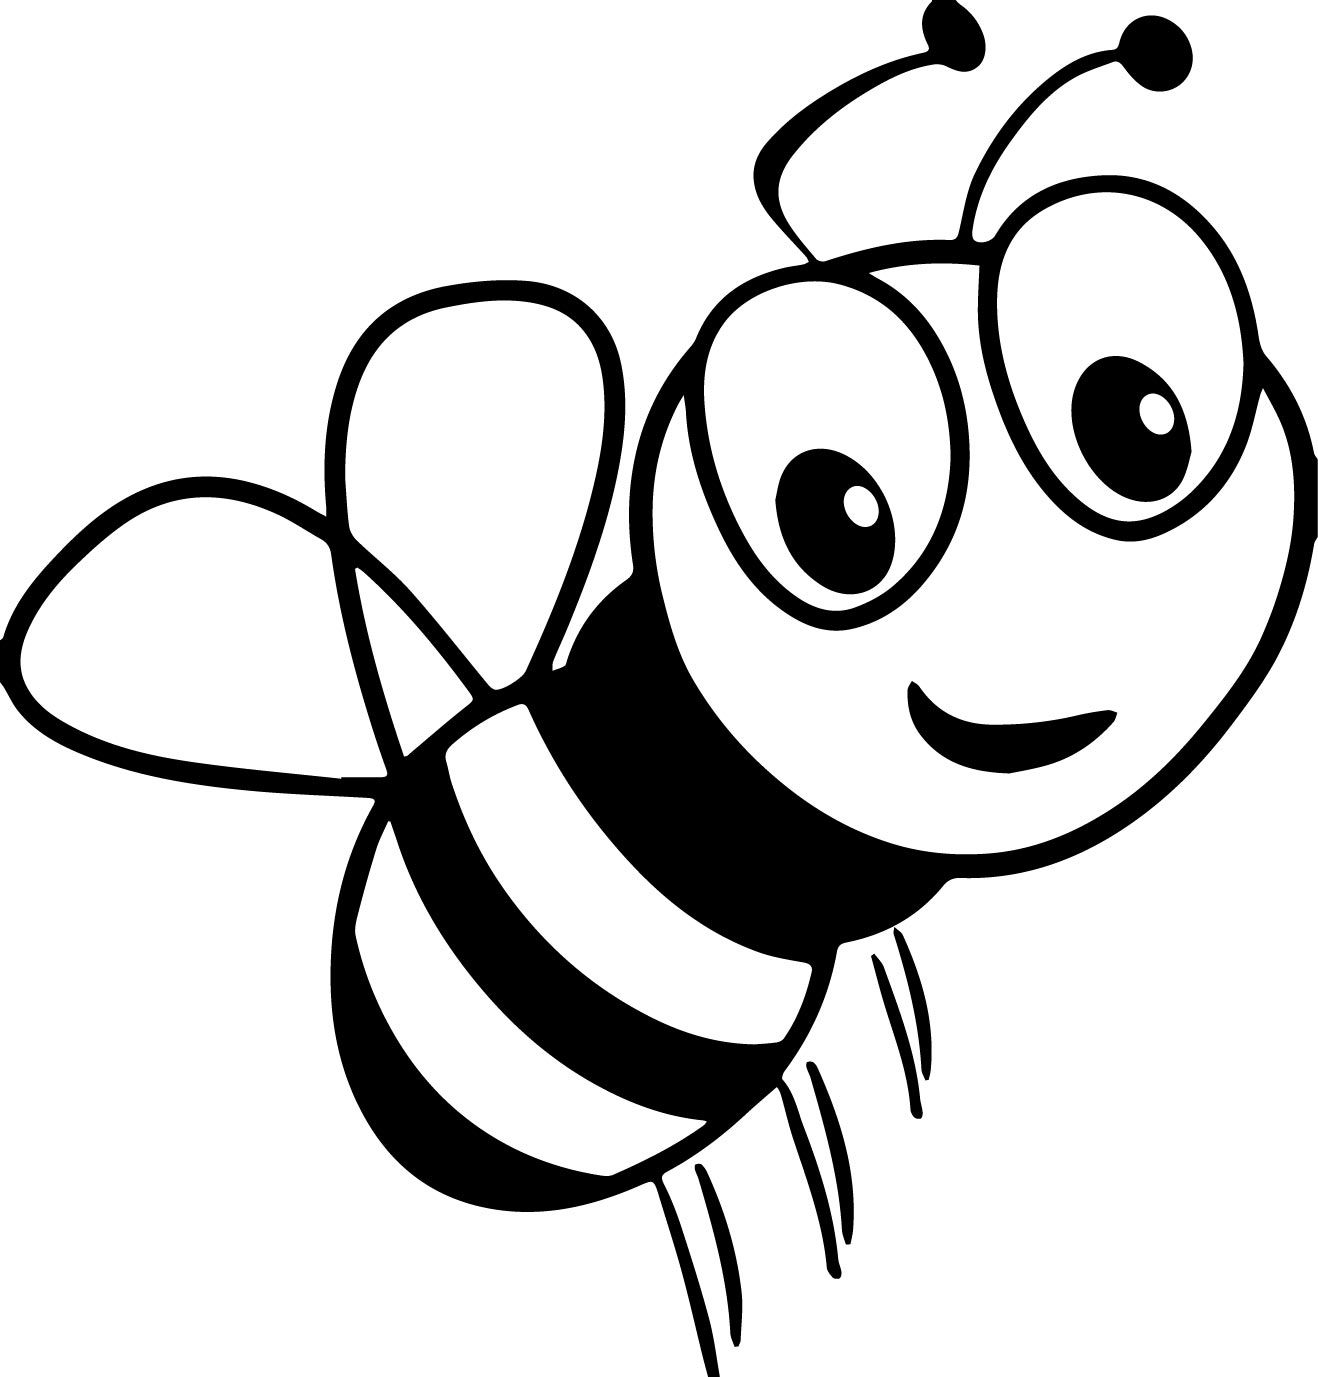 cartoon bumble bee coloring pages cartoon bee coloring page free printable coloring pages coloring pages bee bumble cartoon